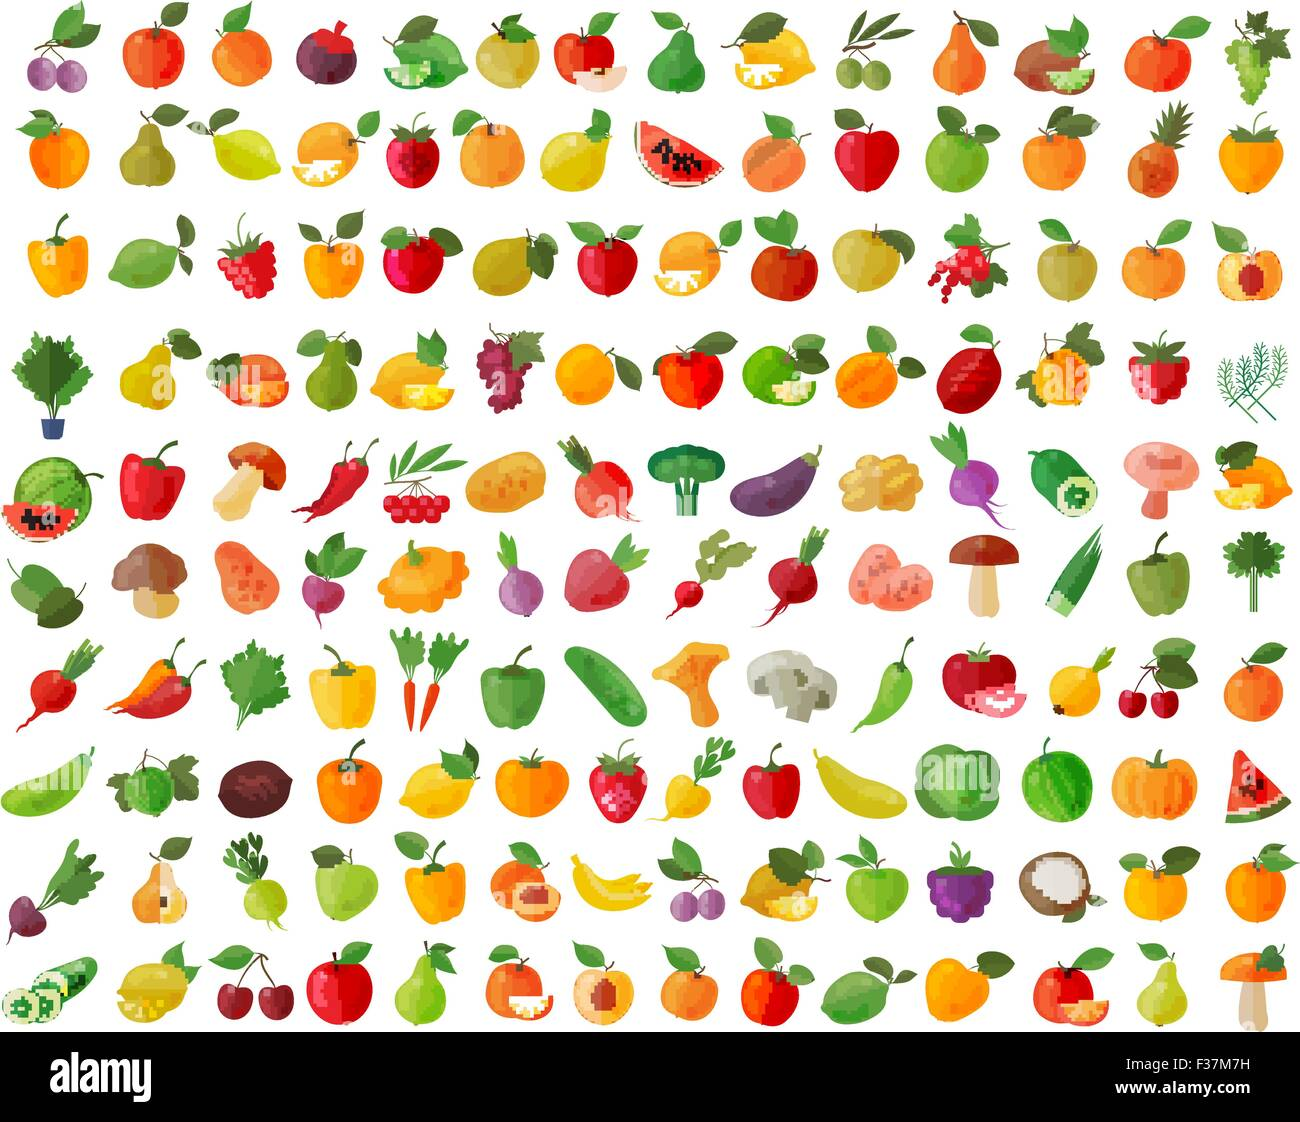 fruit and vegetables color icons set - Stock Vector